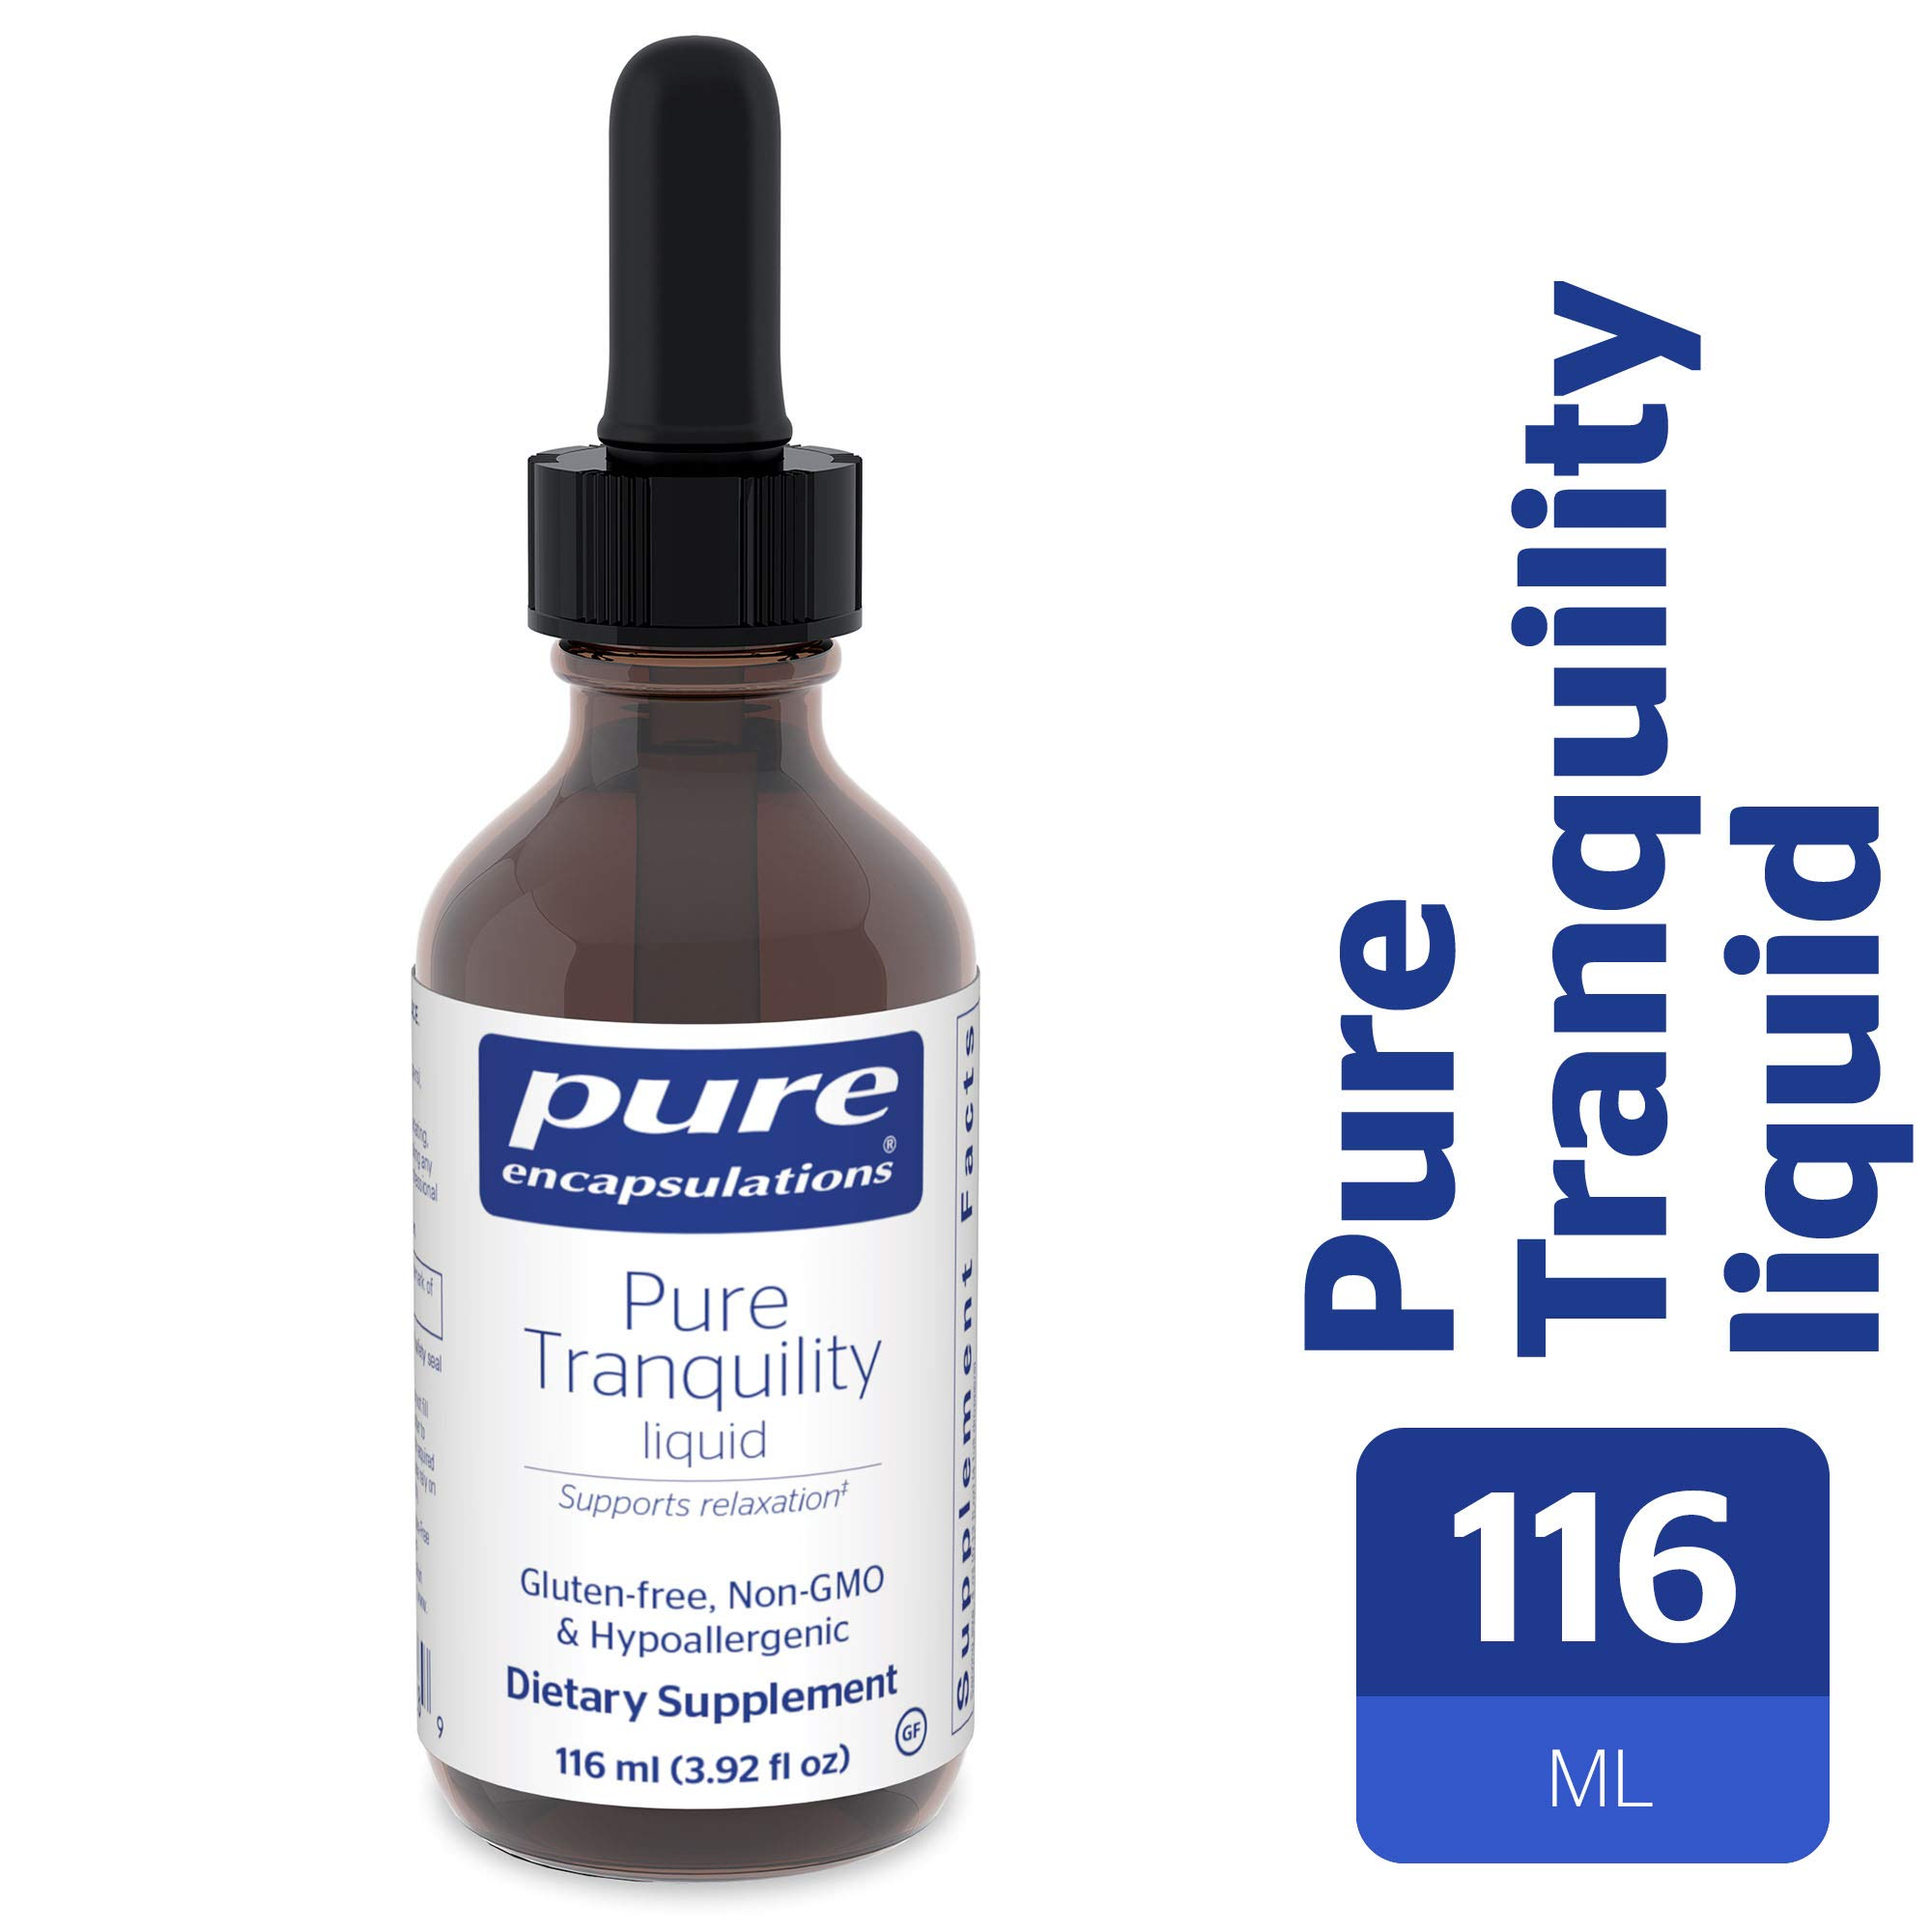 Pure Encapsulations - Pure Tranquility Liquid - Hypoallergenic Supplement to Support Relaxation and Moderate Occasional Stress* - 116 ml (3.92 fl oz)